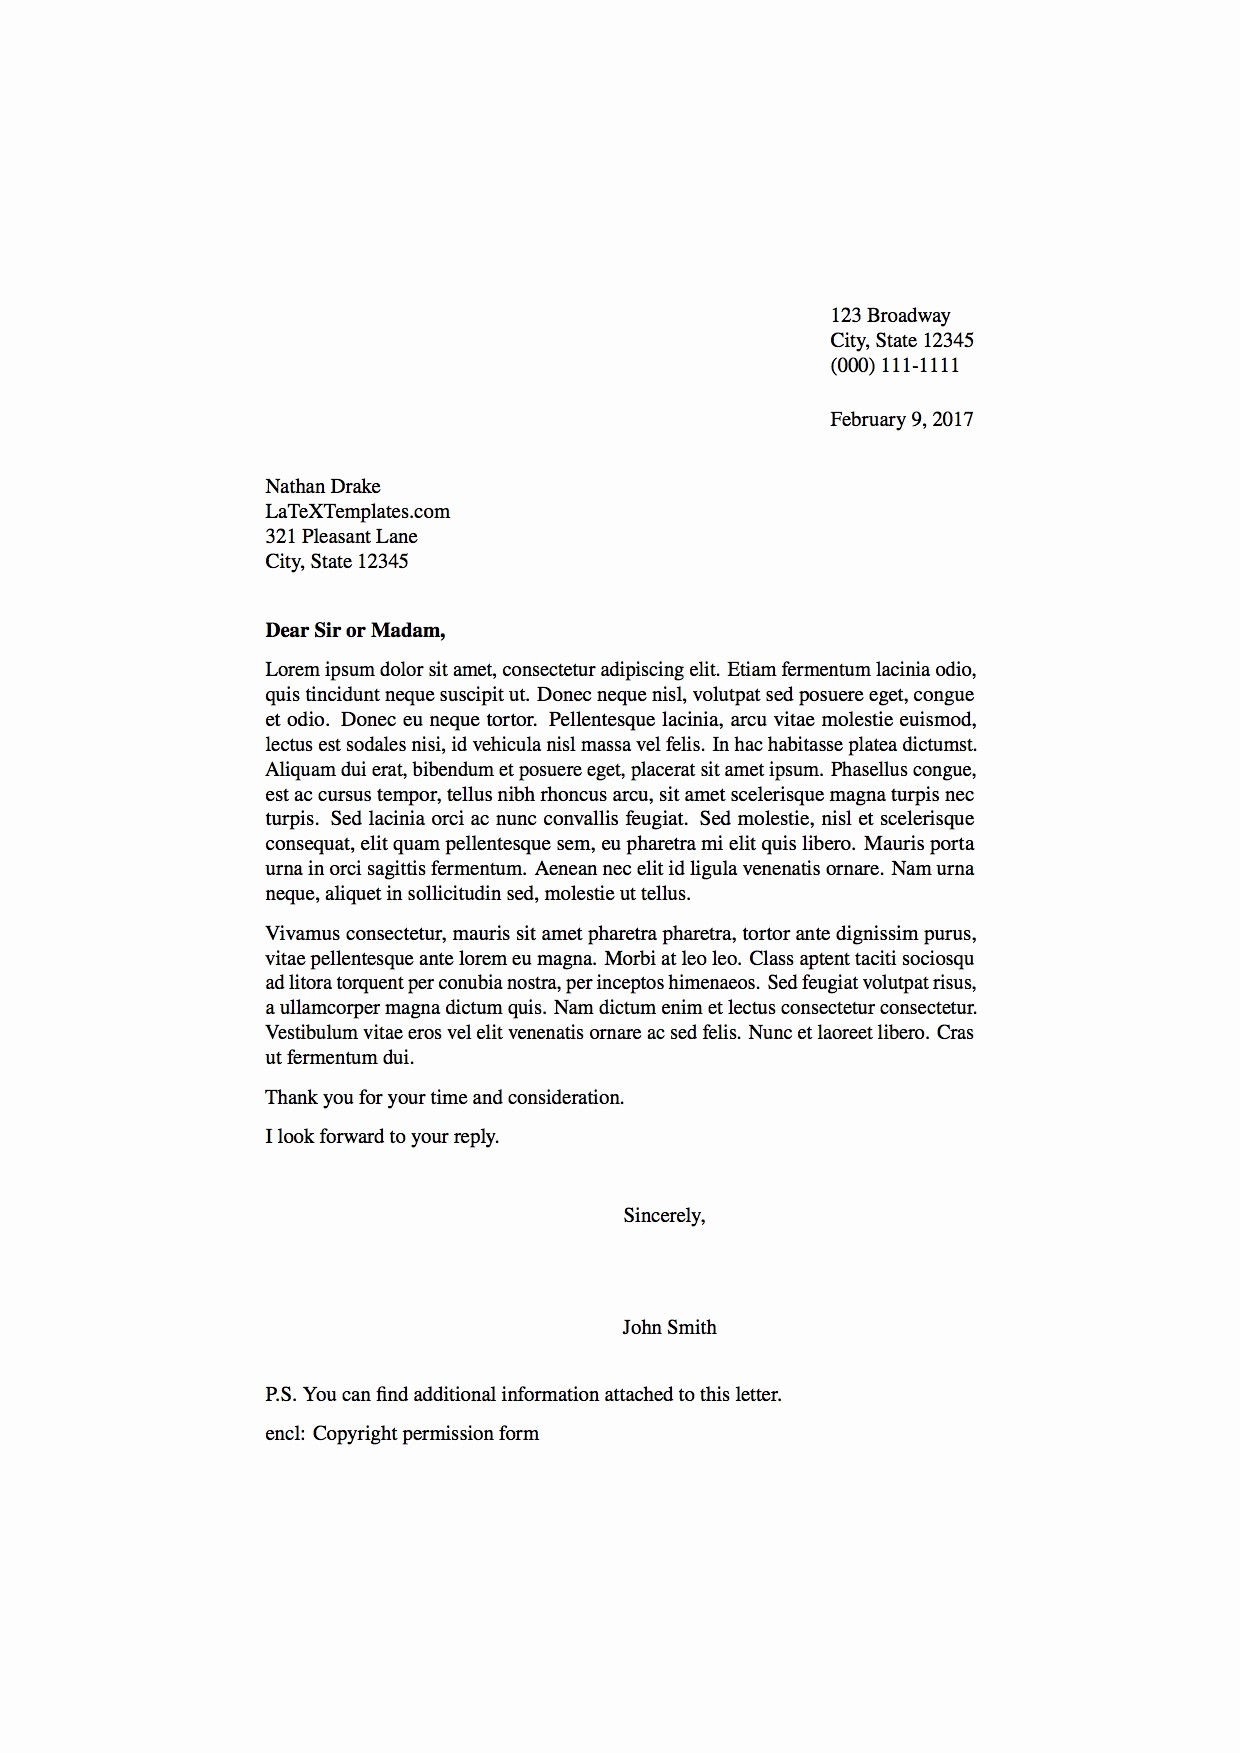 Set Up A Business Letter Awesome Latex Templates formal Letters